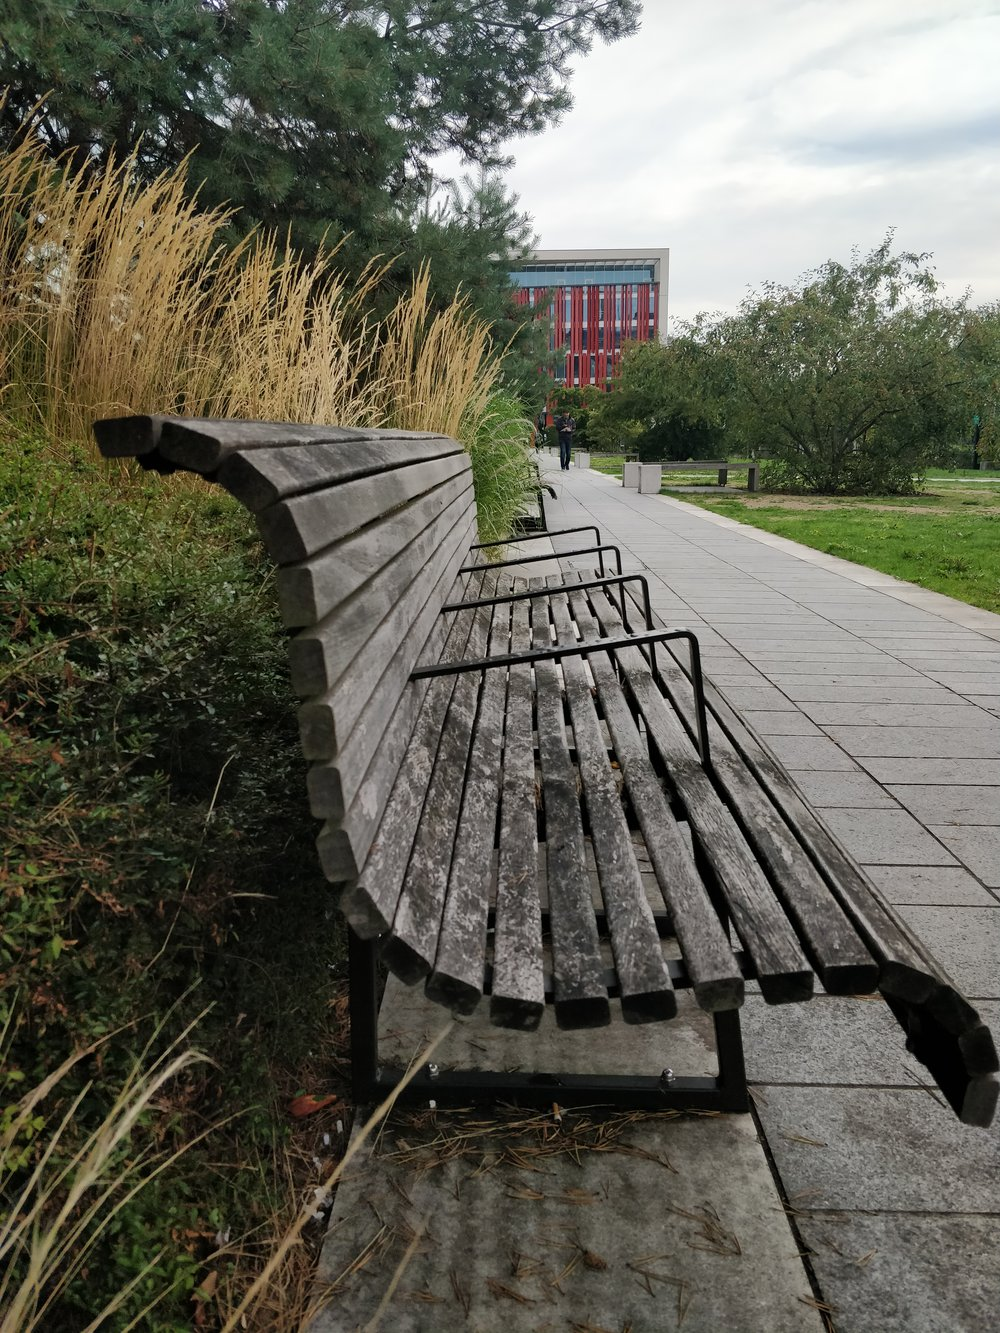 While they may appear like little armrests on the seats… - they're actually designed to stop homeless people from sleeping on them.